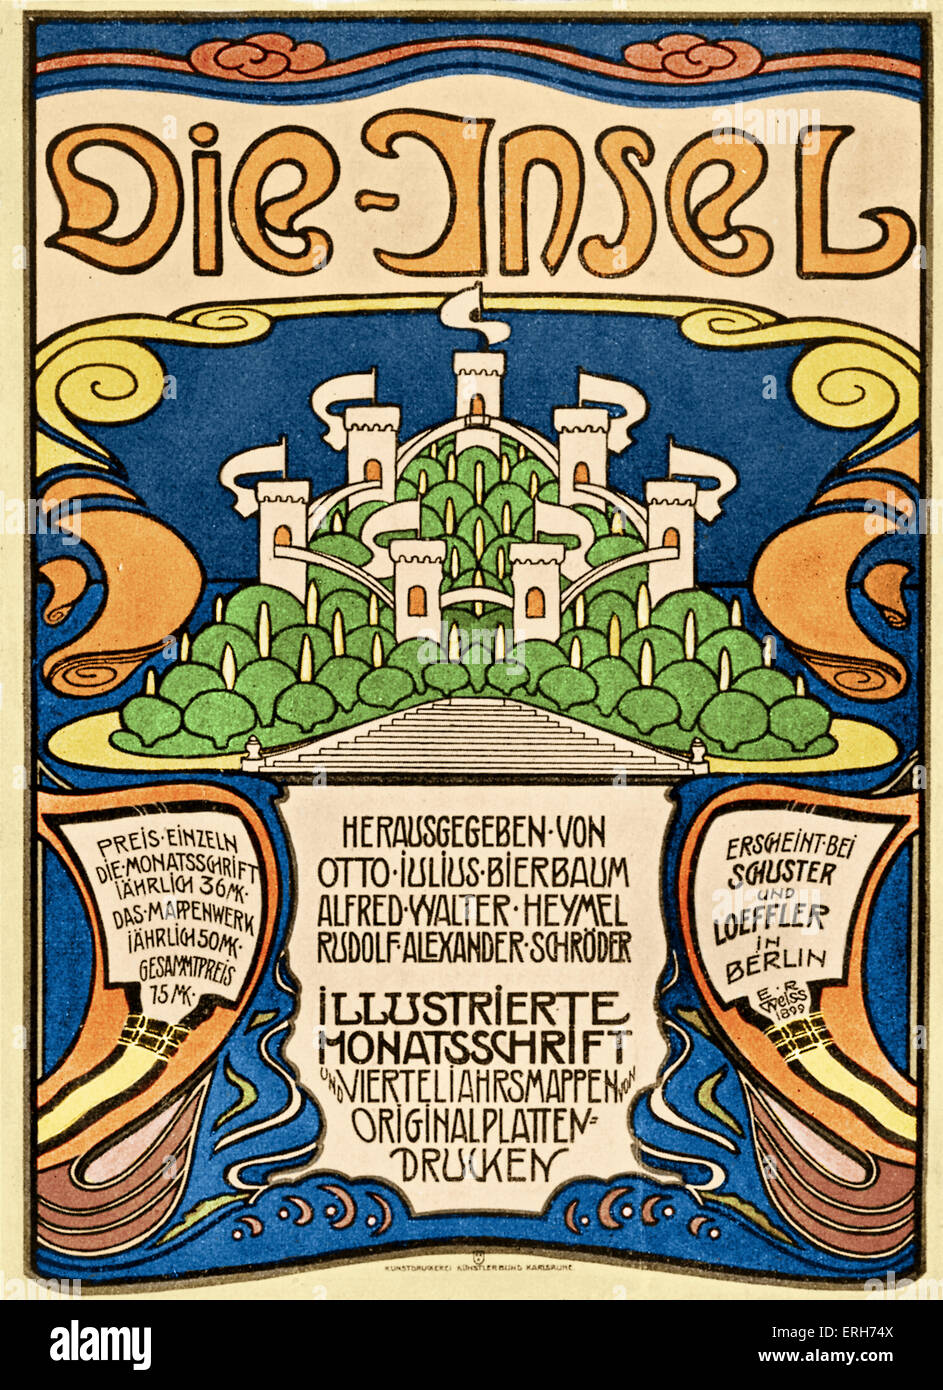 Die Insel ( The Island)  -  German literary and art magazine   published in Munich from 1899  by Otto Julius Bierbaum, - Stock Image